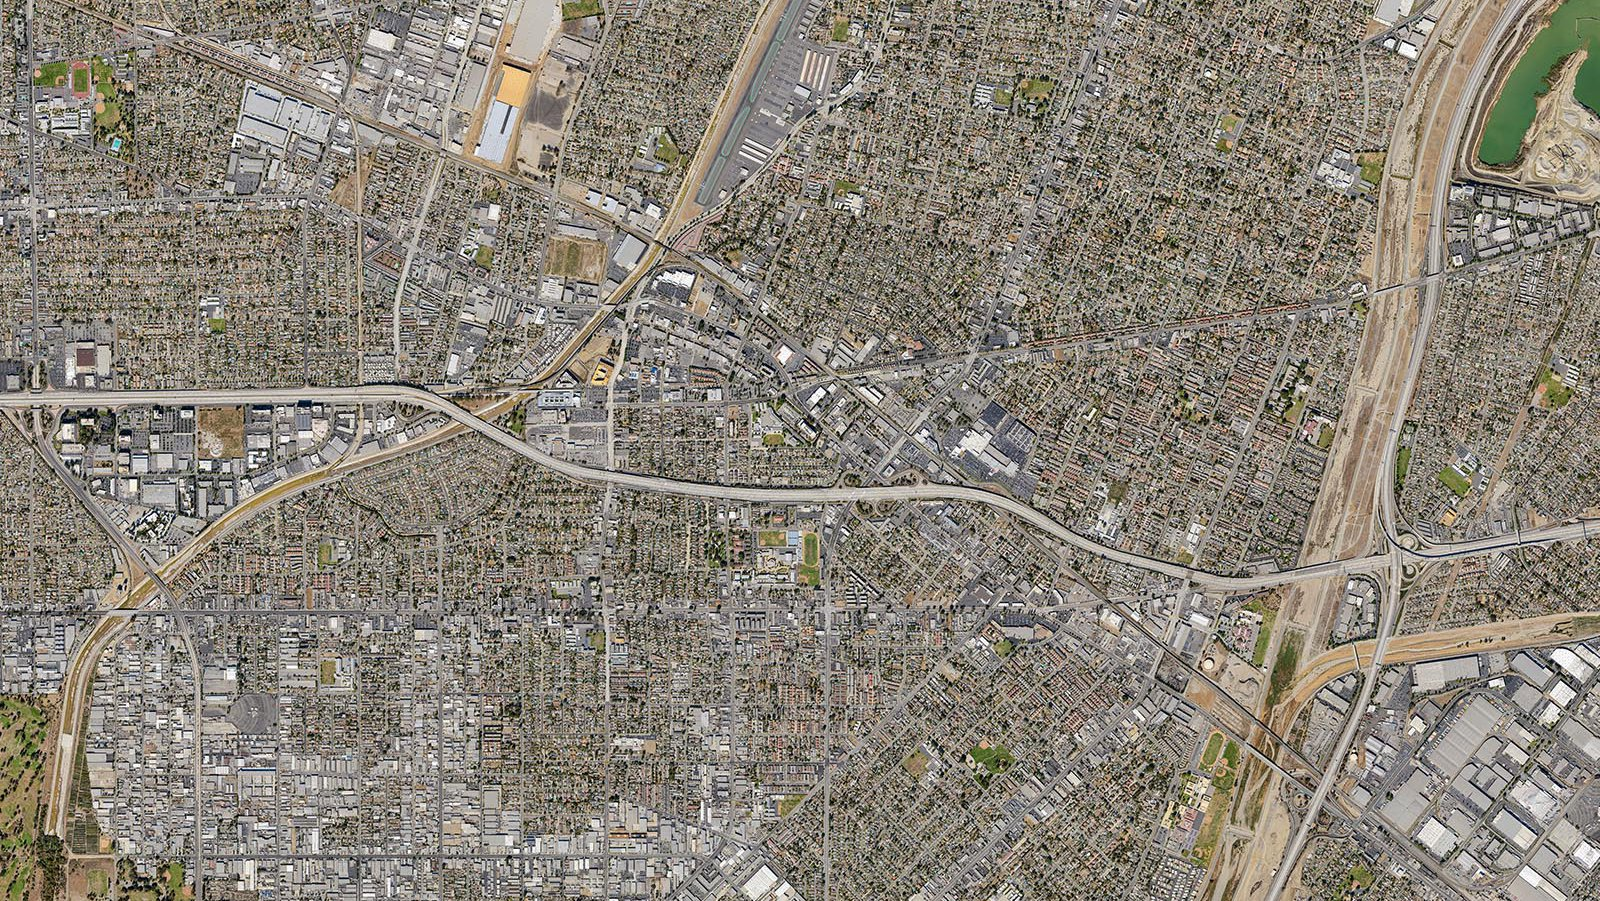 Vertical Map of the City of El Monte, California